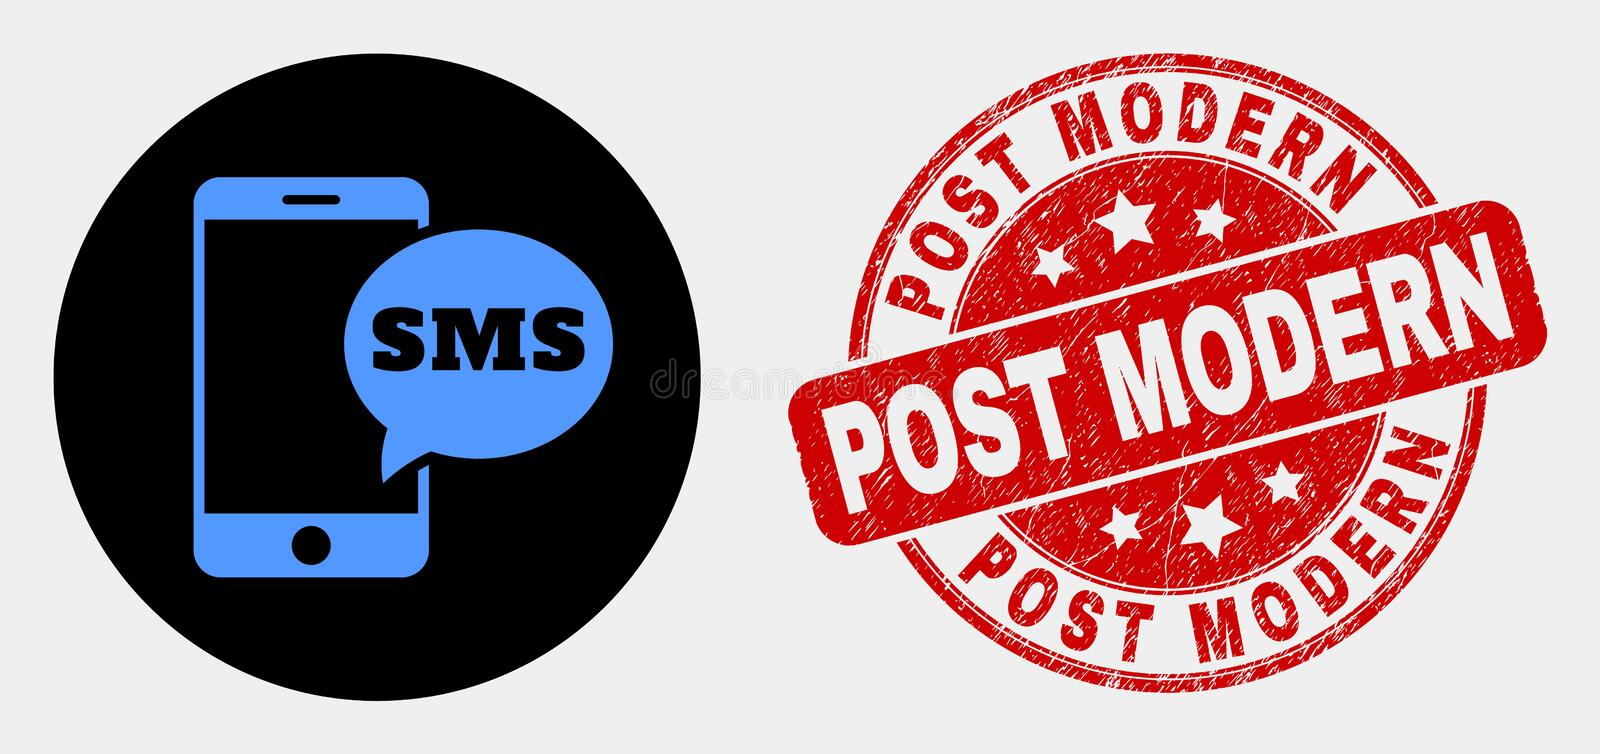 Vector Smartphone SMS Icon and Grunge Post Modern Seal royalty free illustration